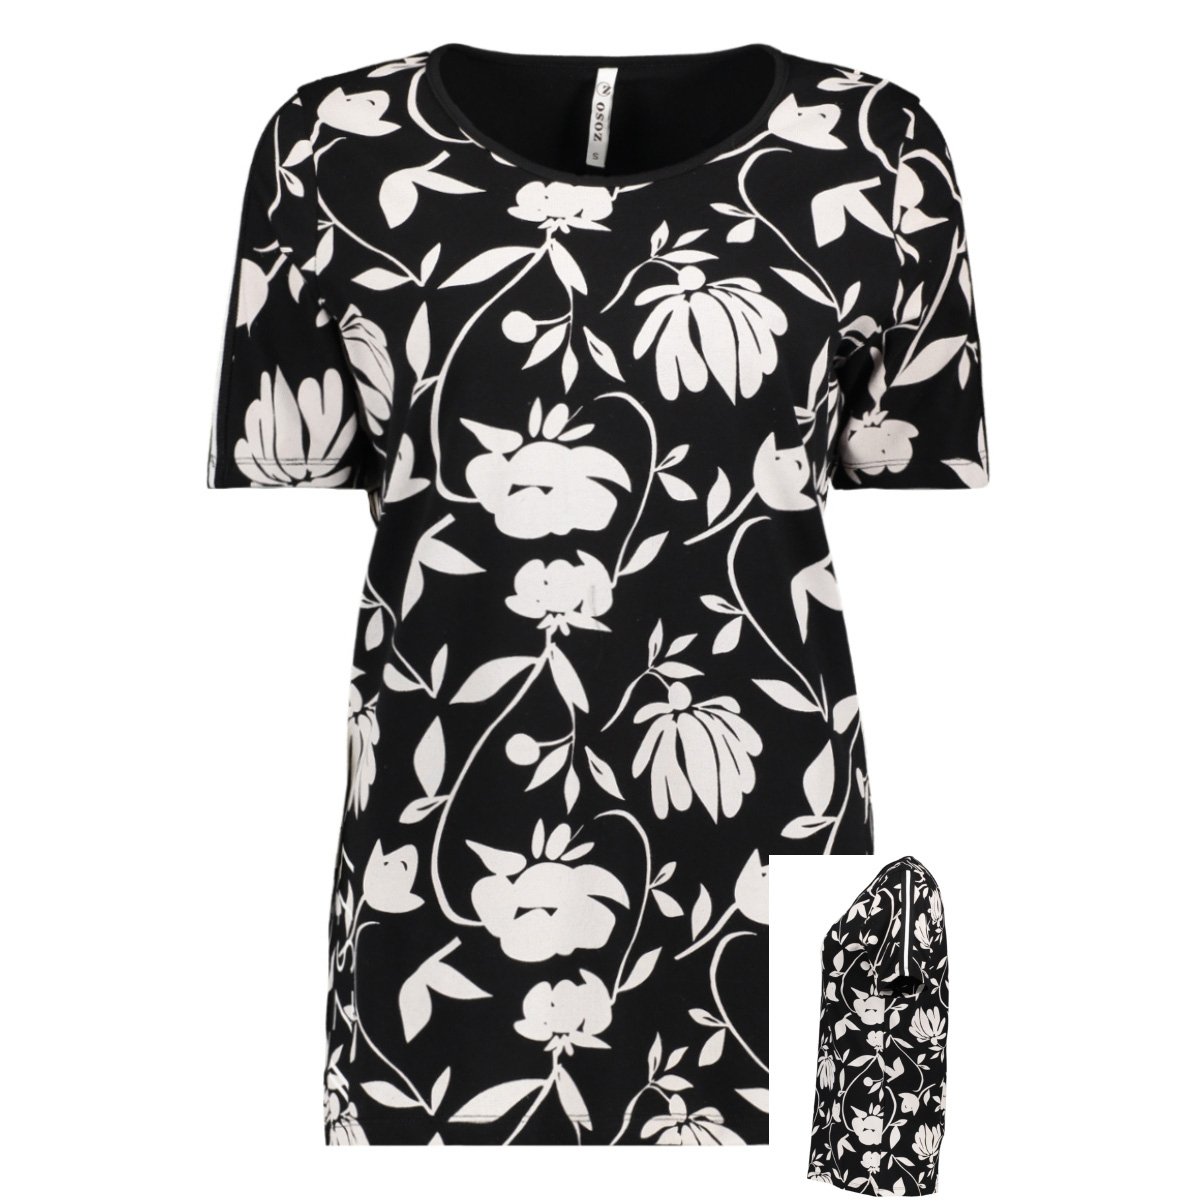 tilly t shirt with print 194 zoso t-shirt black/offwhite